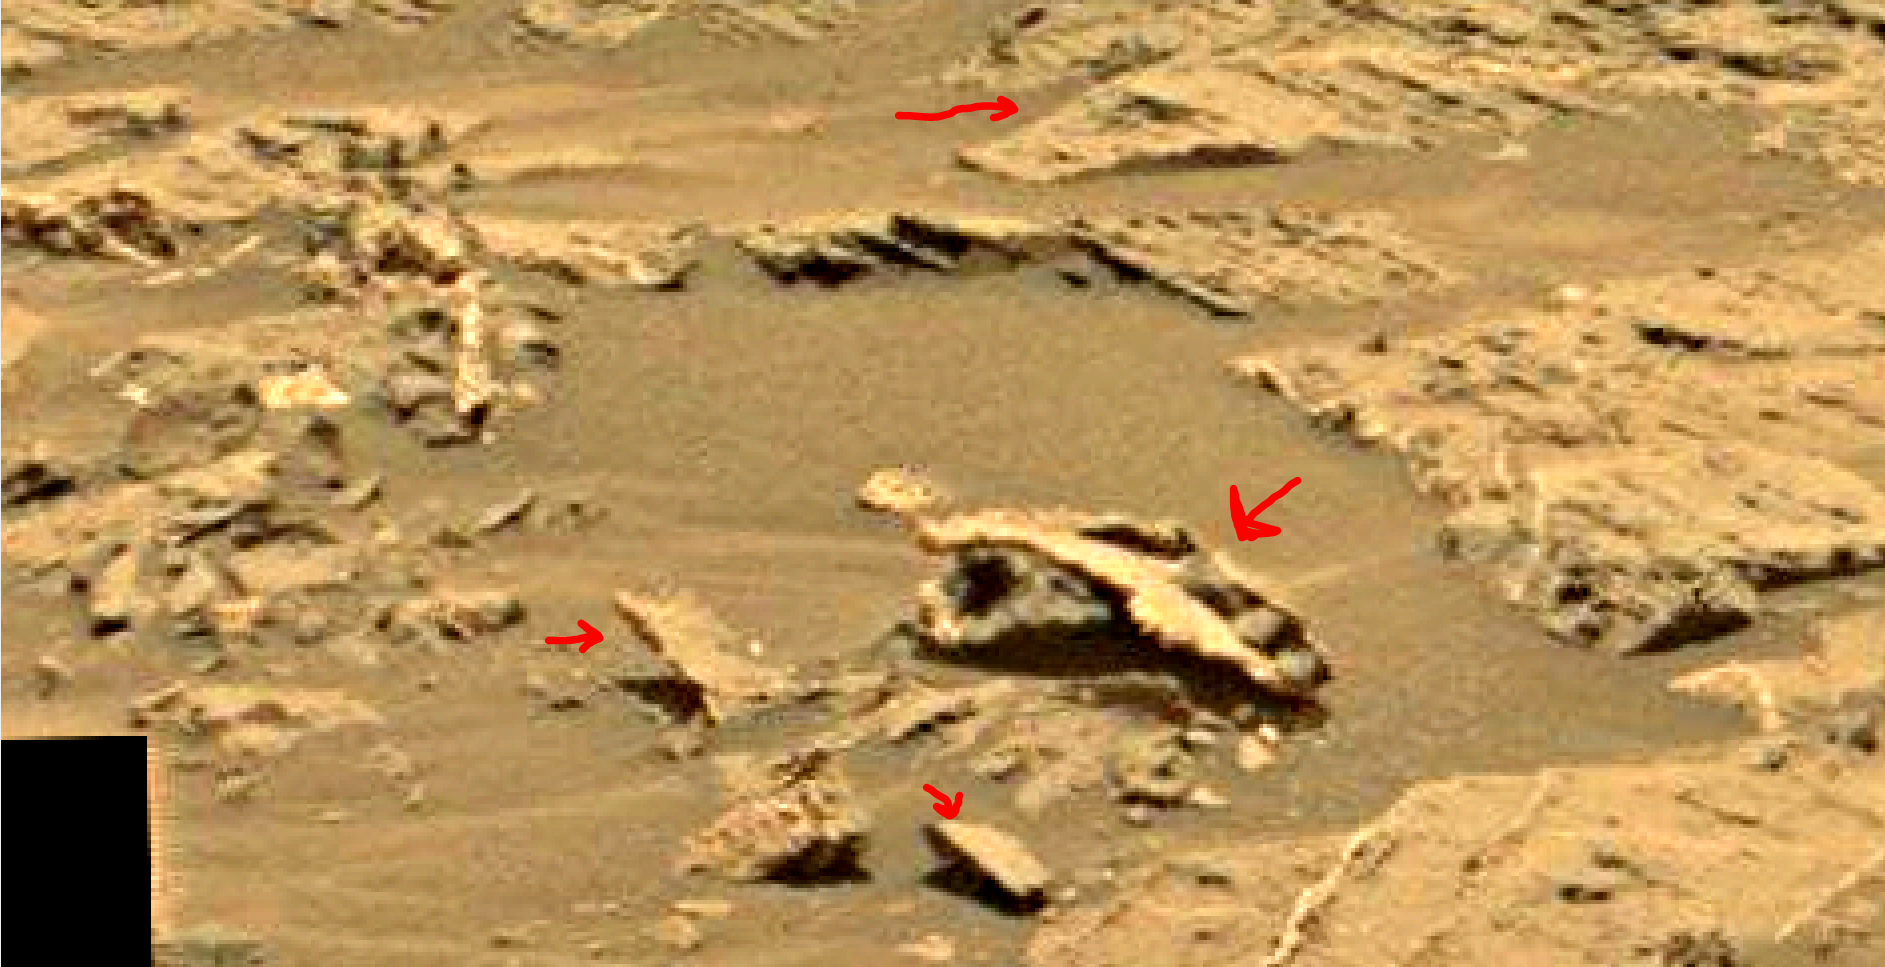 mars sol 1353 anomaly-artifacts 14a was life on mars